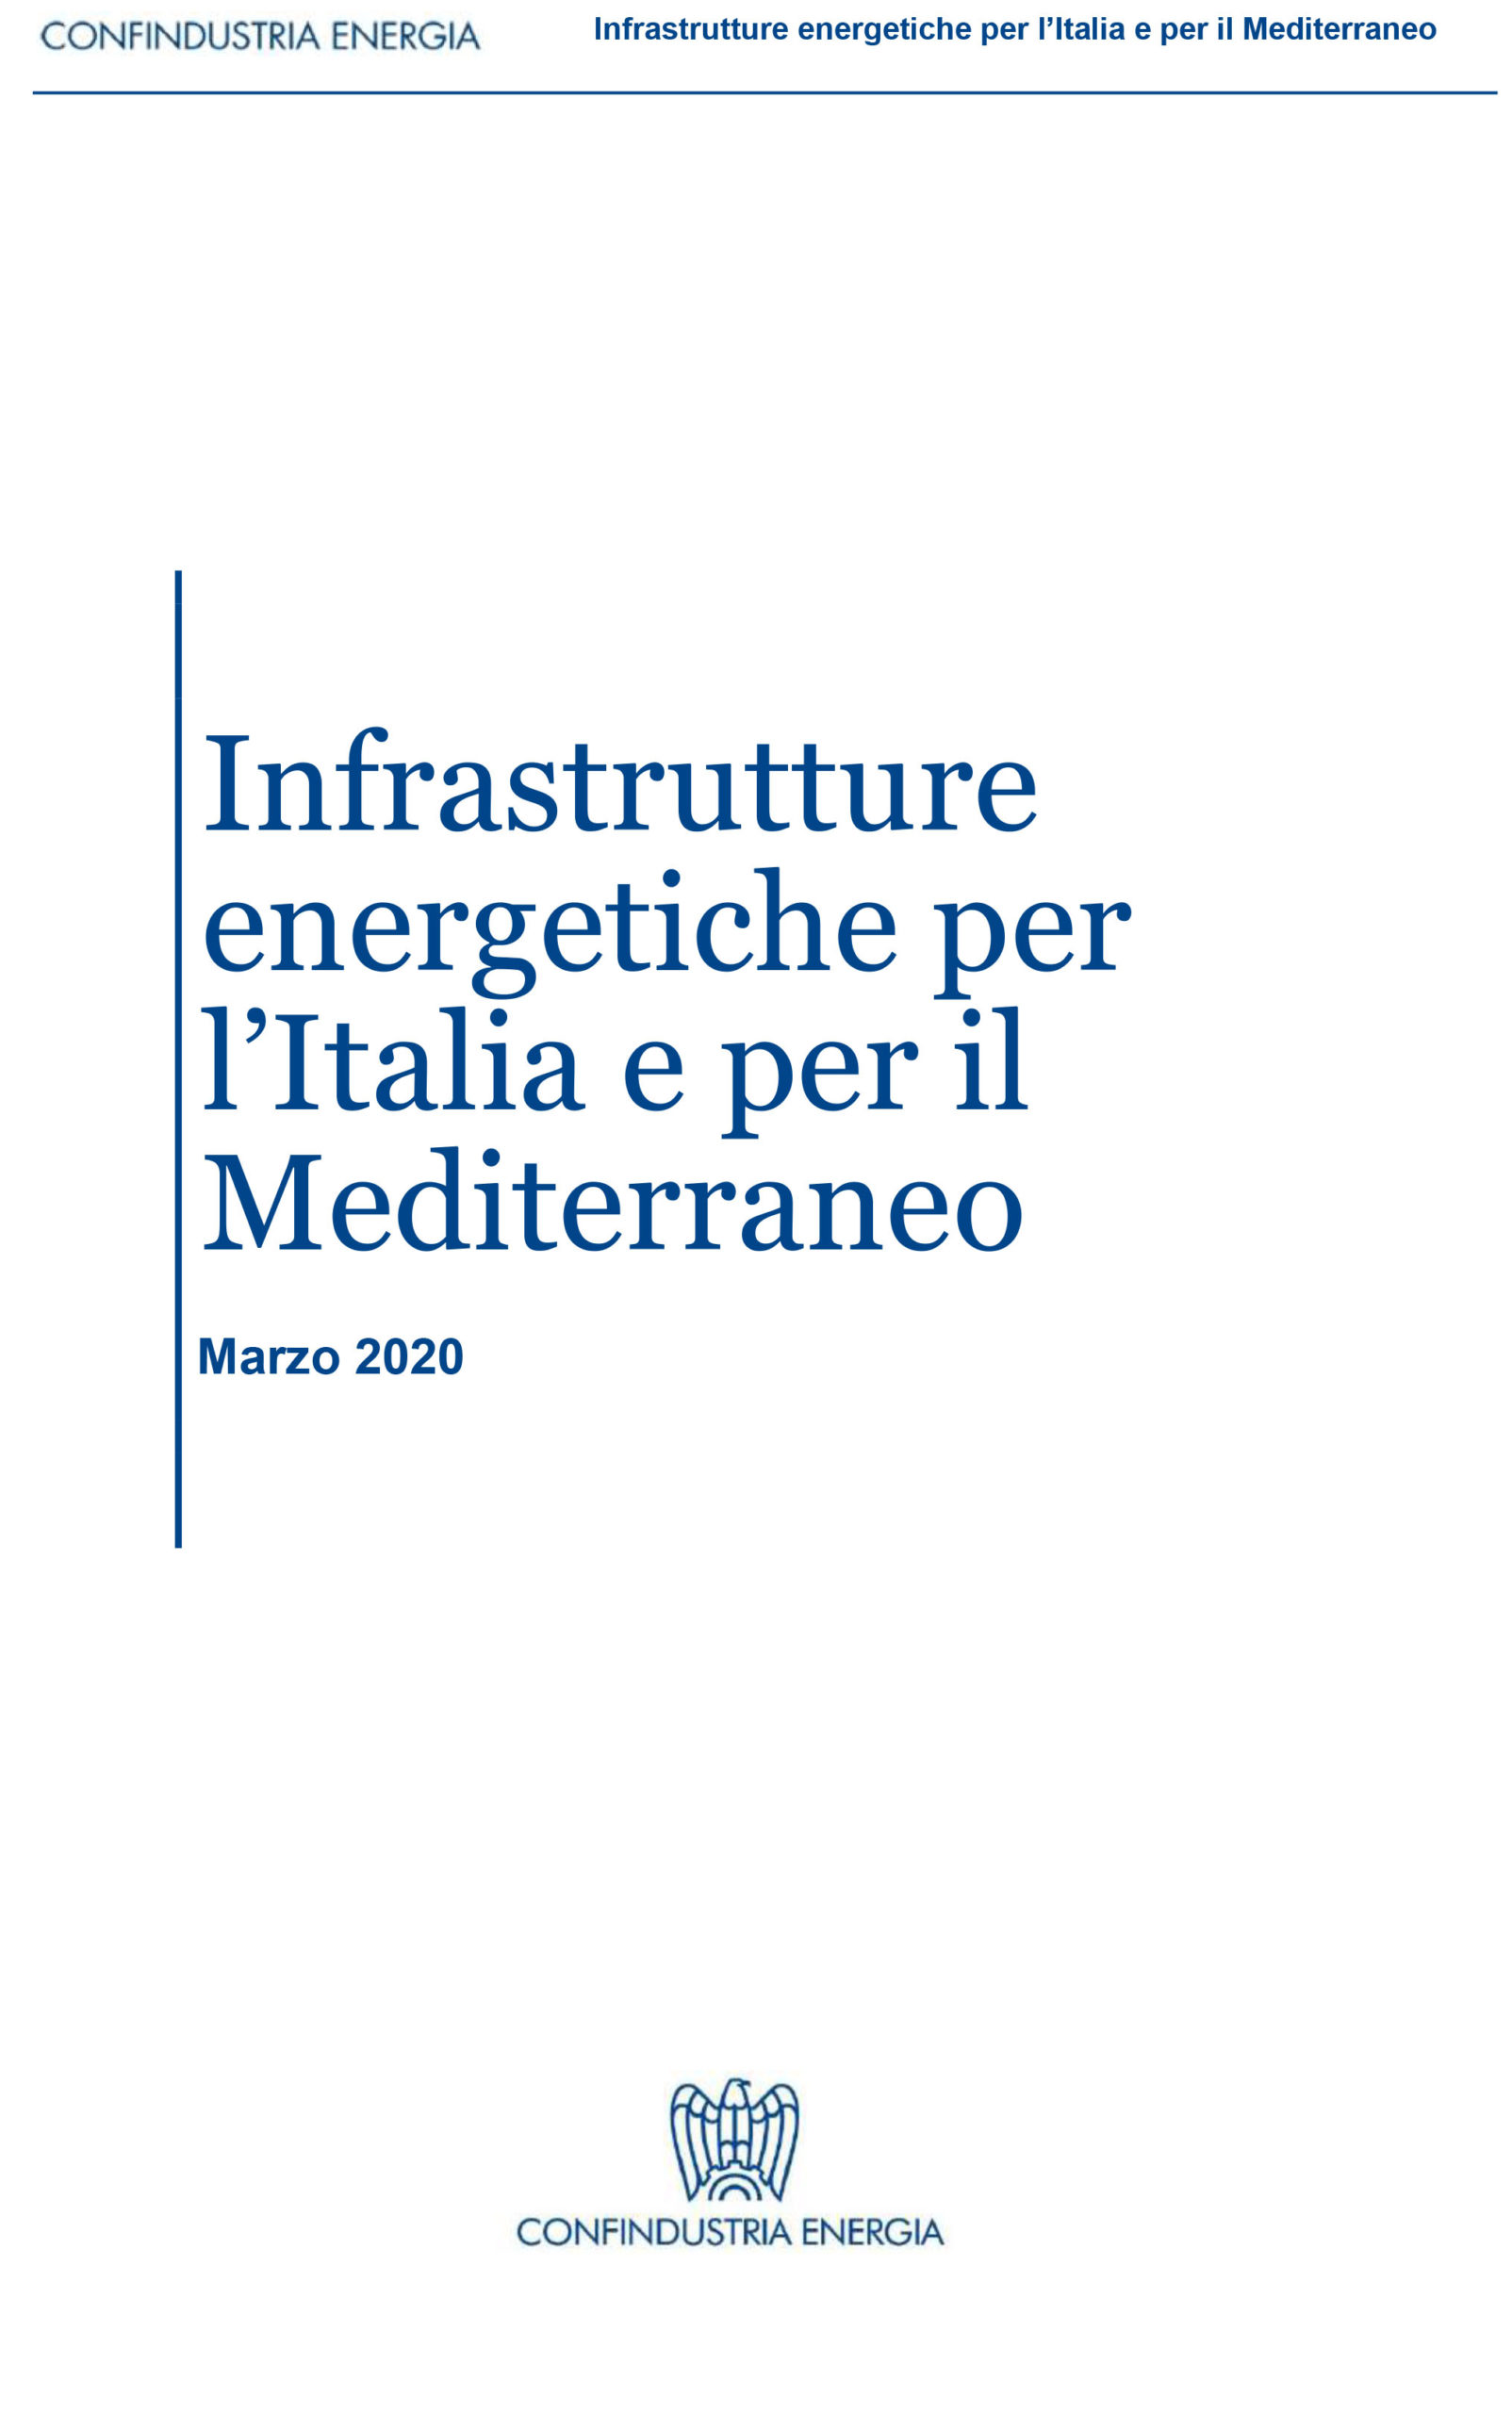 Energy Infrastructures for Italy and the Mediterranean, April 2020